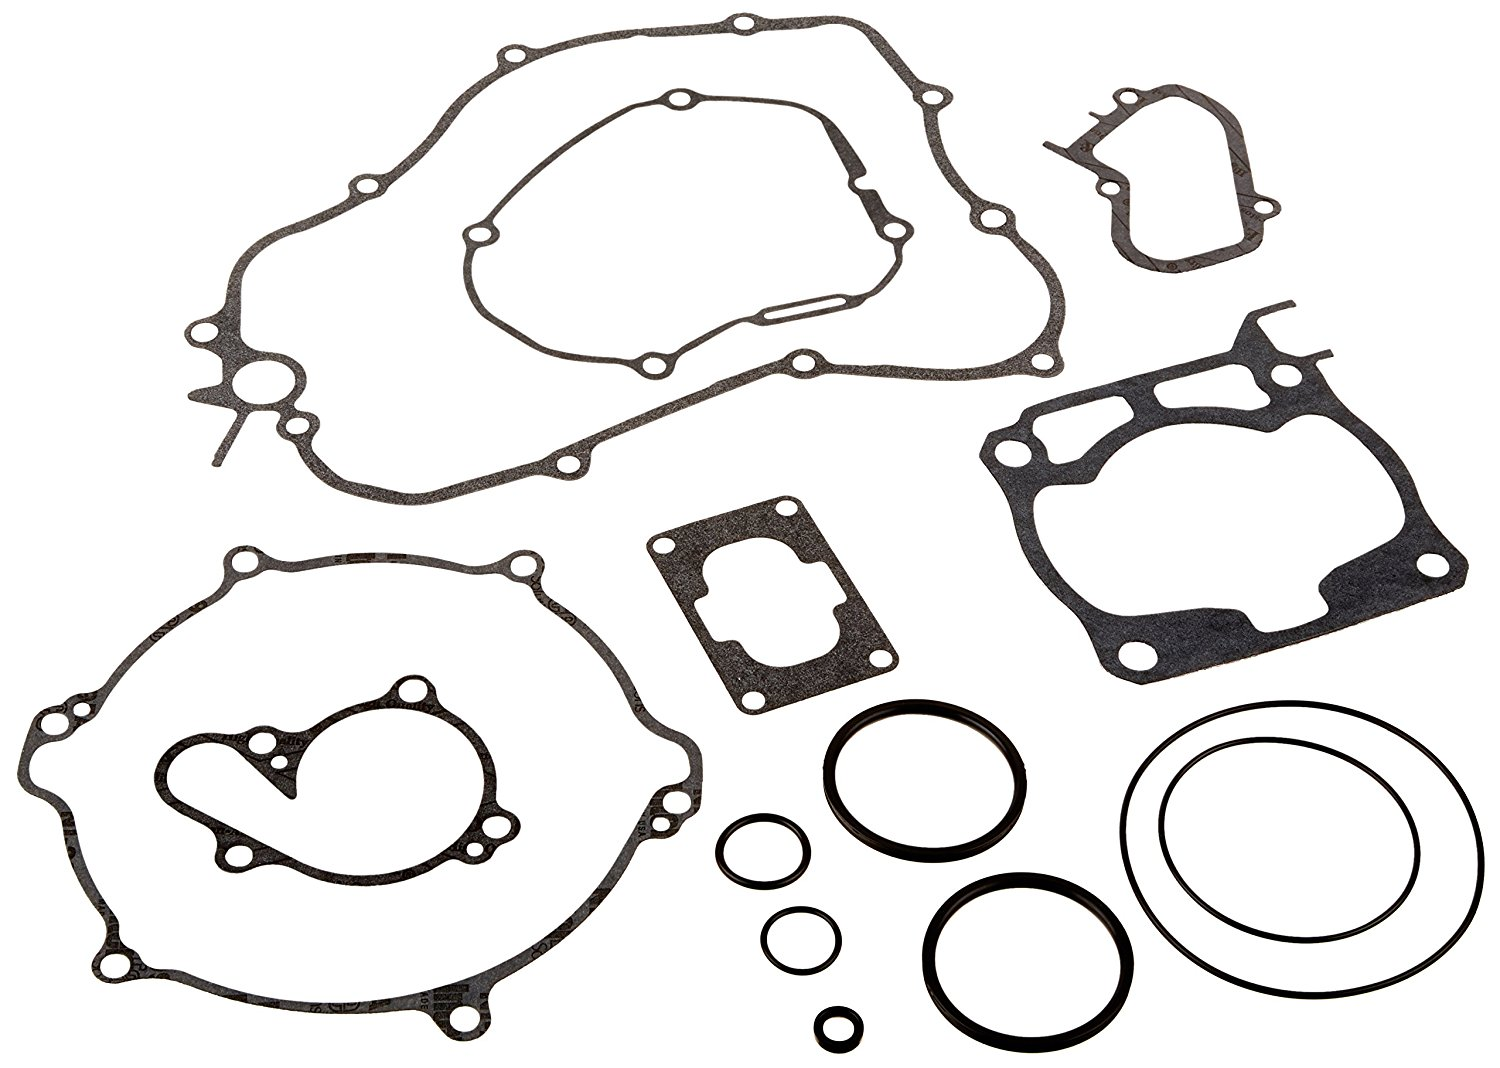 New Vertex Complete Gasket Set Wo Seals For Yamaha Yz 125 05 16